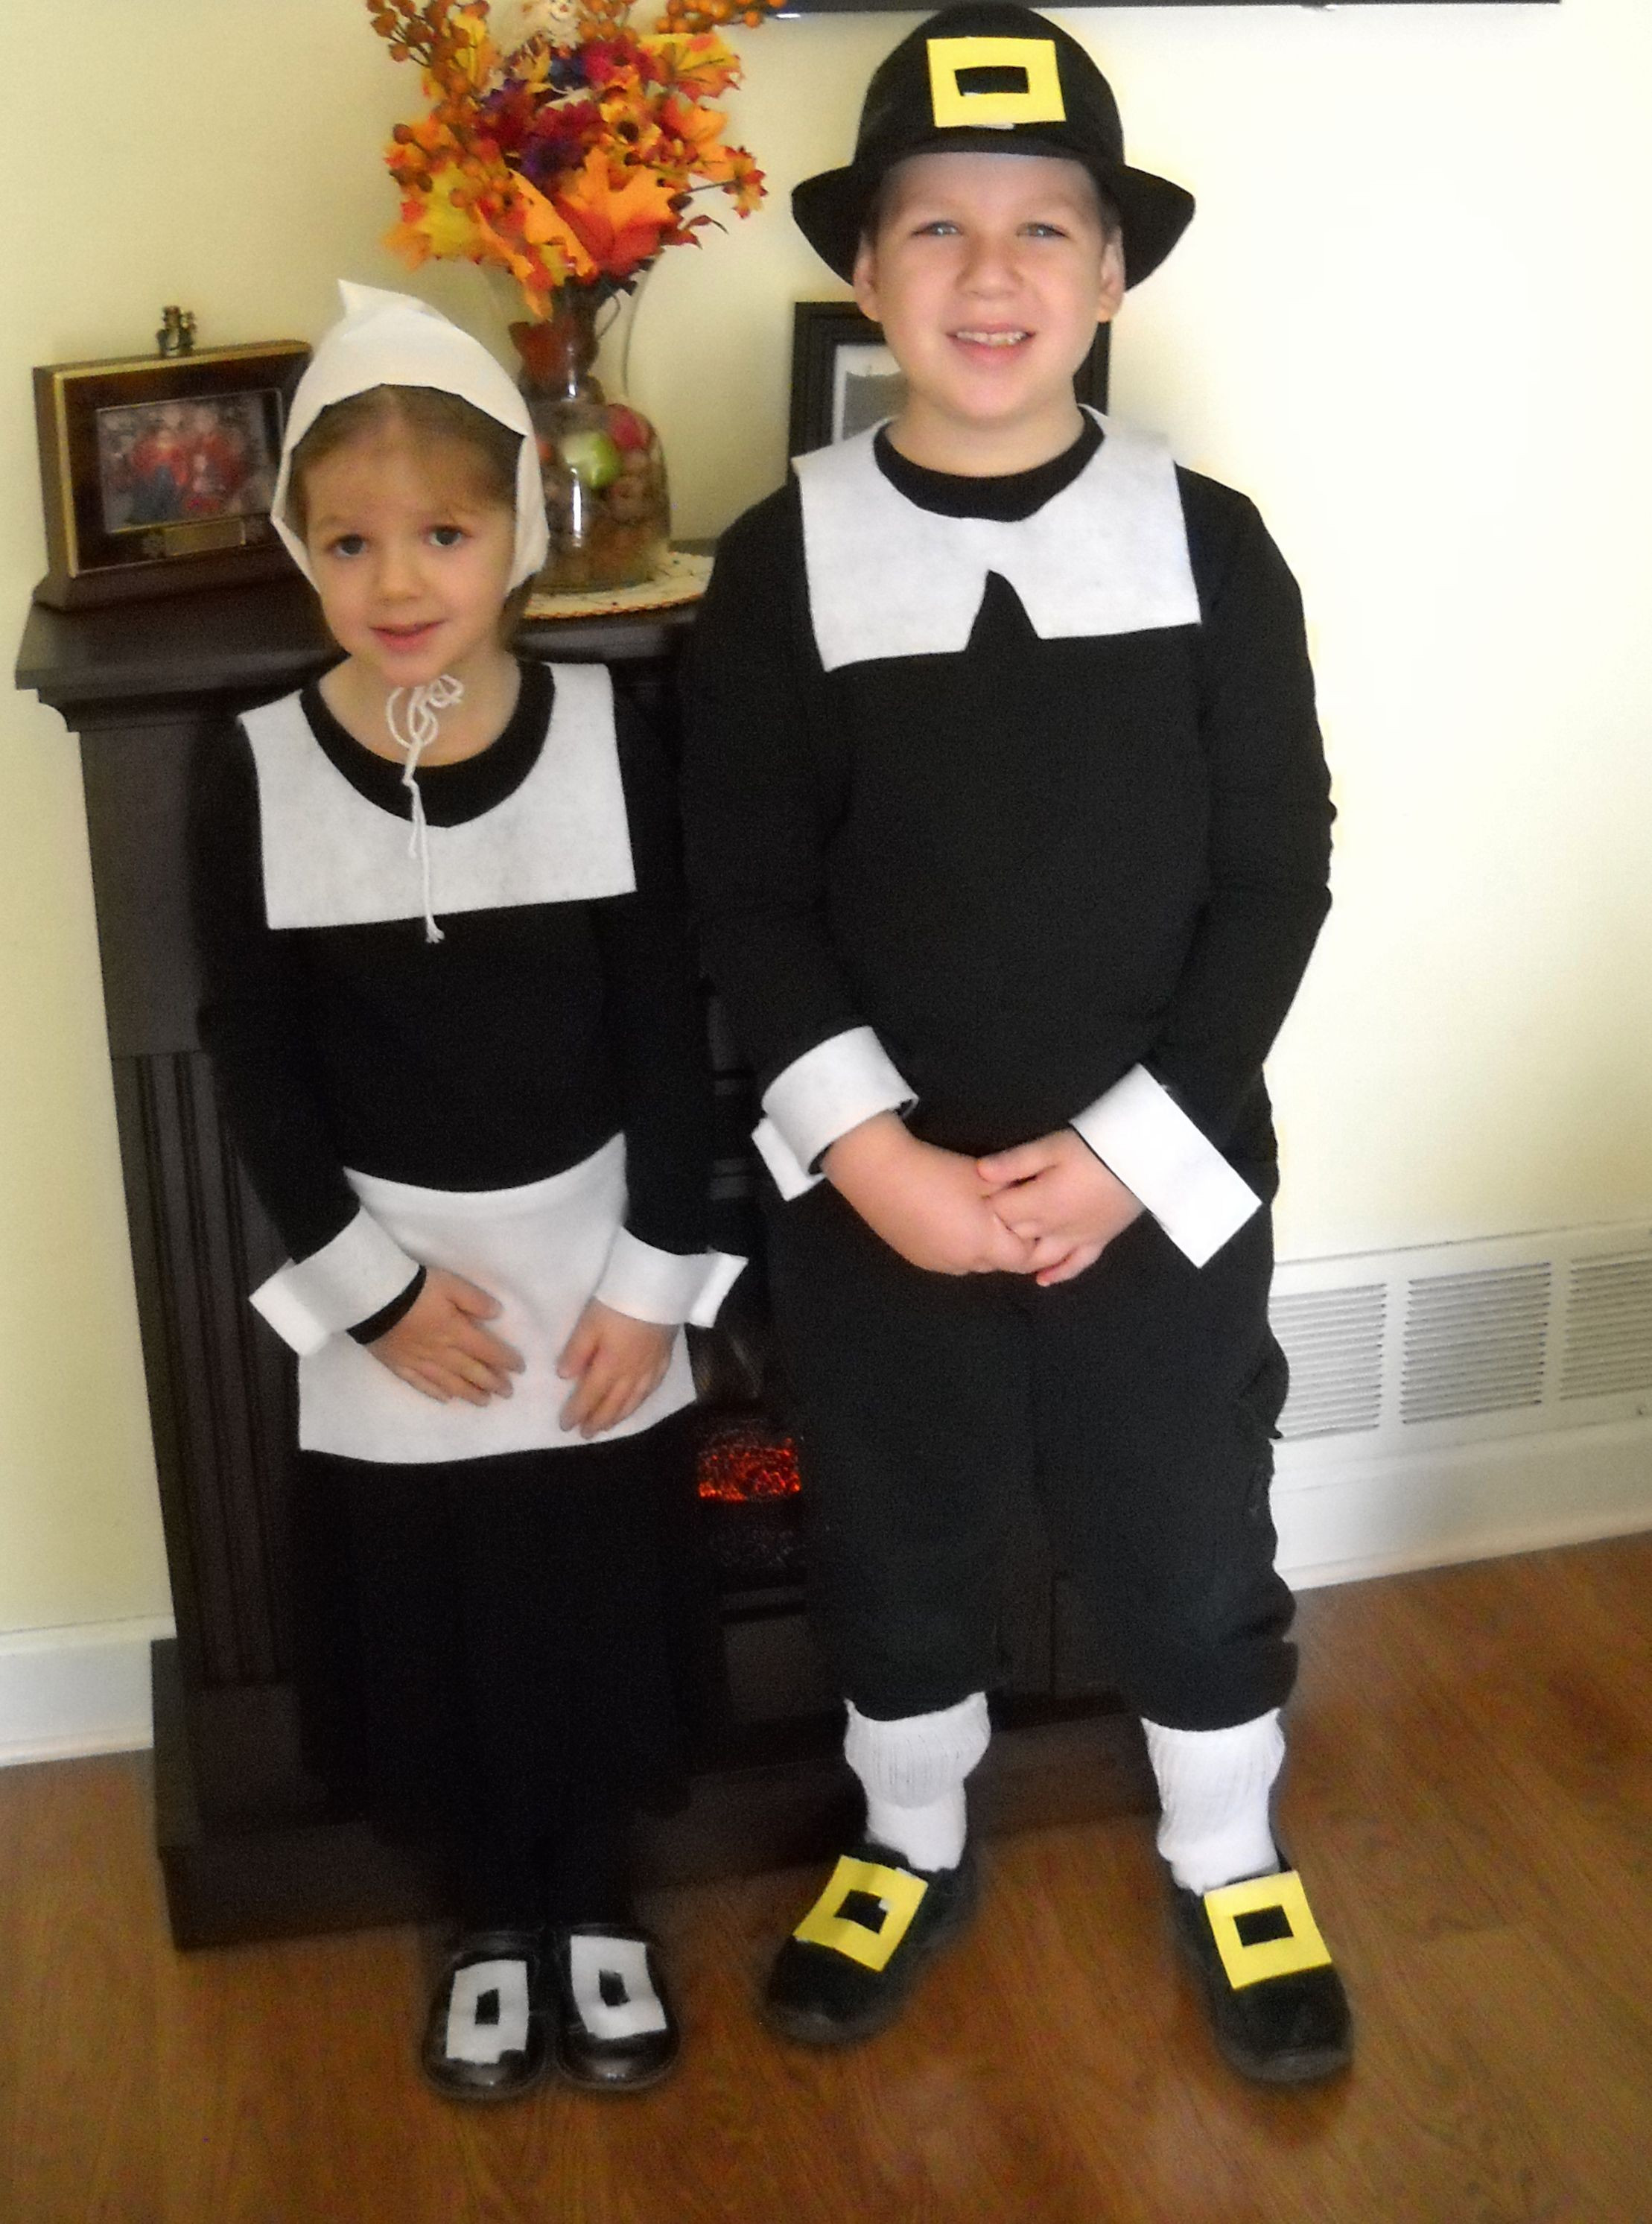 Best ideas about DIY Turkey Costume . Save or Pin Pilgrim costumes udderlysmooth thanksgiving Now.